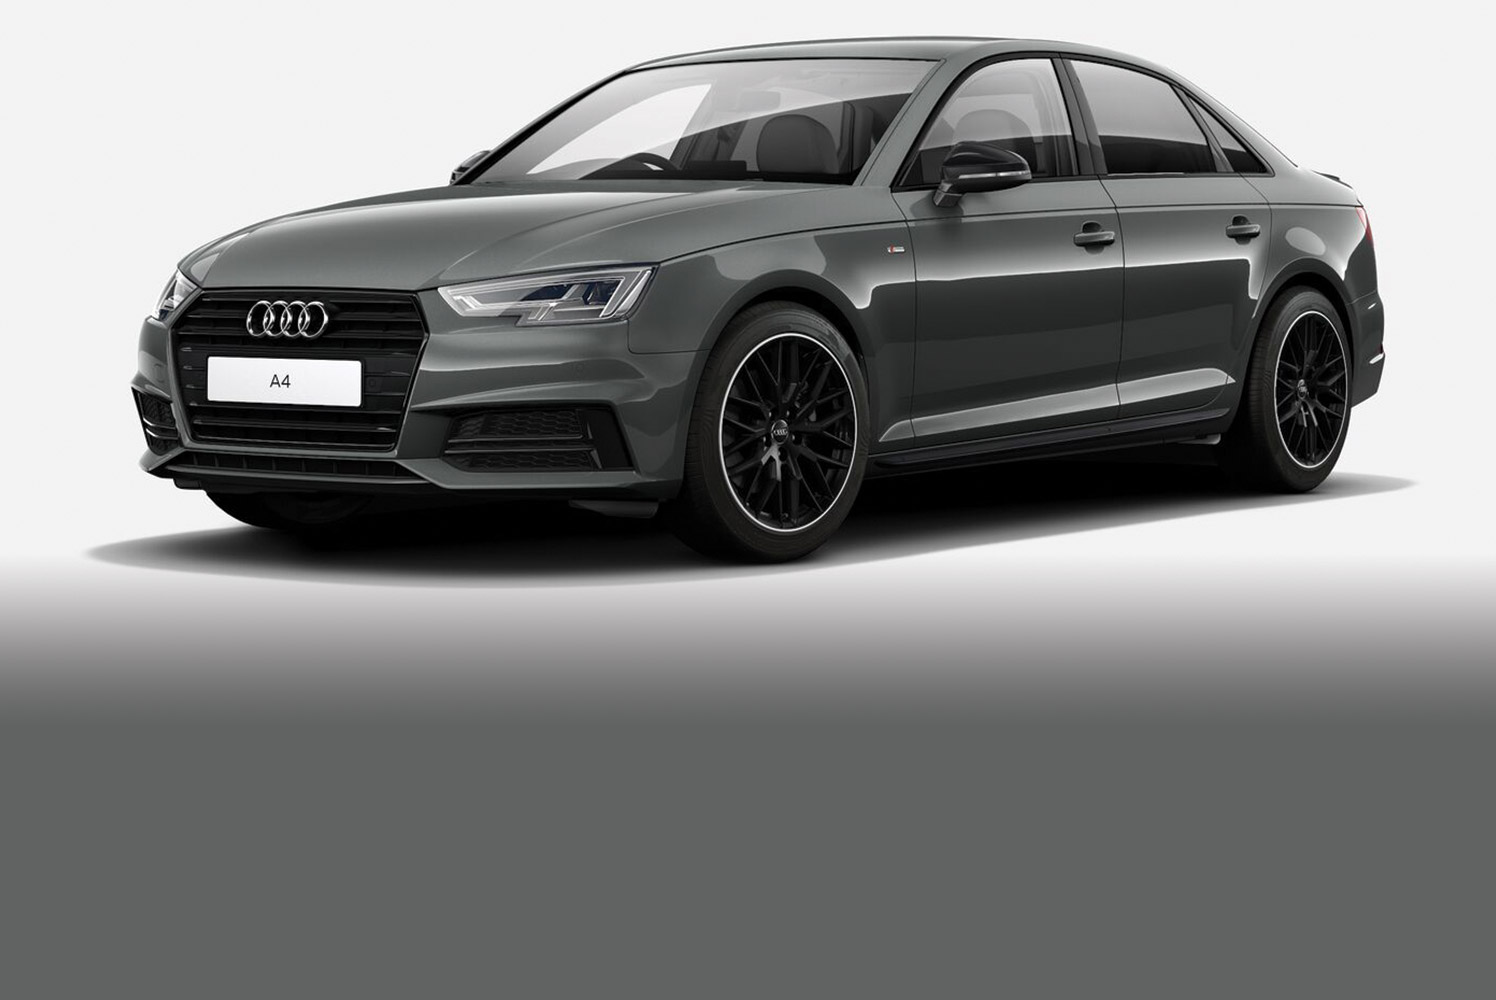 New Audi A4 Black Edition Available